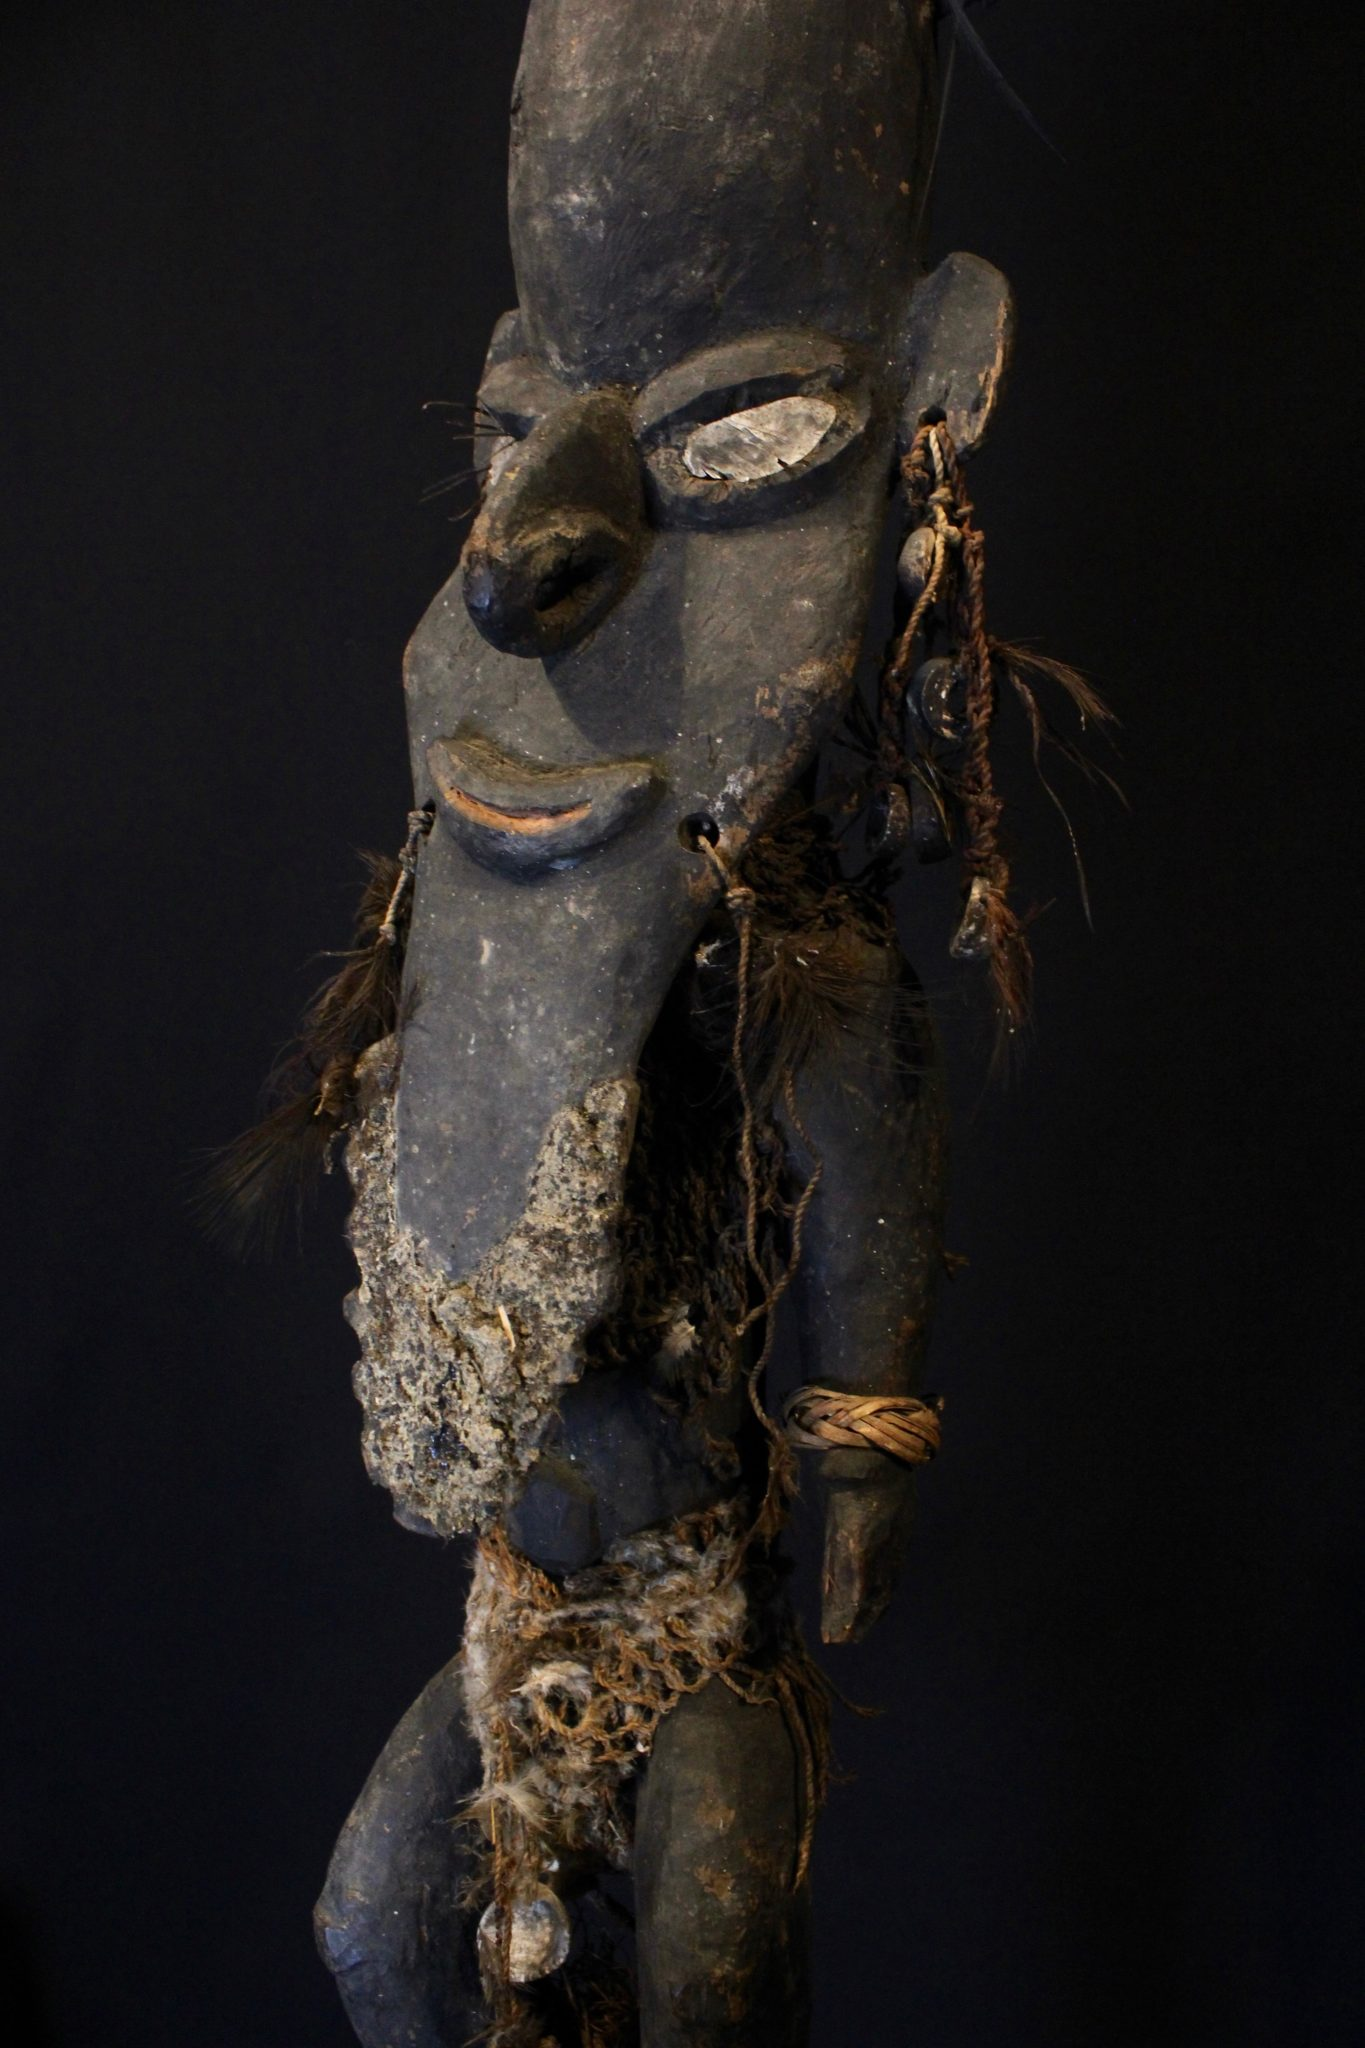 """Sacred Flute with Wusear Effigy Stopper, East Sepik Province, Papua New Guinea, Indonesia, Biwat people, Early 20th c, Flute body - Bamboo, raffia. Effigy Figure - Carved in wood, this figure is particularly elaborate - shell eyes, feather eyelashes, woven clothing and shell and feather adornments with tar and string. Played in pairs for the initiation ceremony for boys. The flute had the power to be voices of the spirits. The anthropomorphic figures or Wusear are specific to these flutes and were inserted into the top when not in use to prevent evil spirits from entering the sacred instruments. They were kept in the homes of the shaman and it was taboo for women and children to see them. 55"""" x 9 ½"""" x 8"""", $9500."""